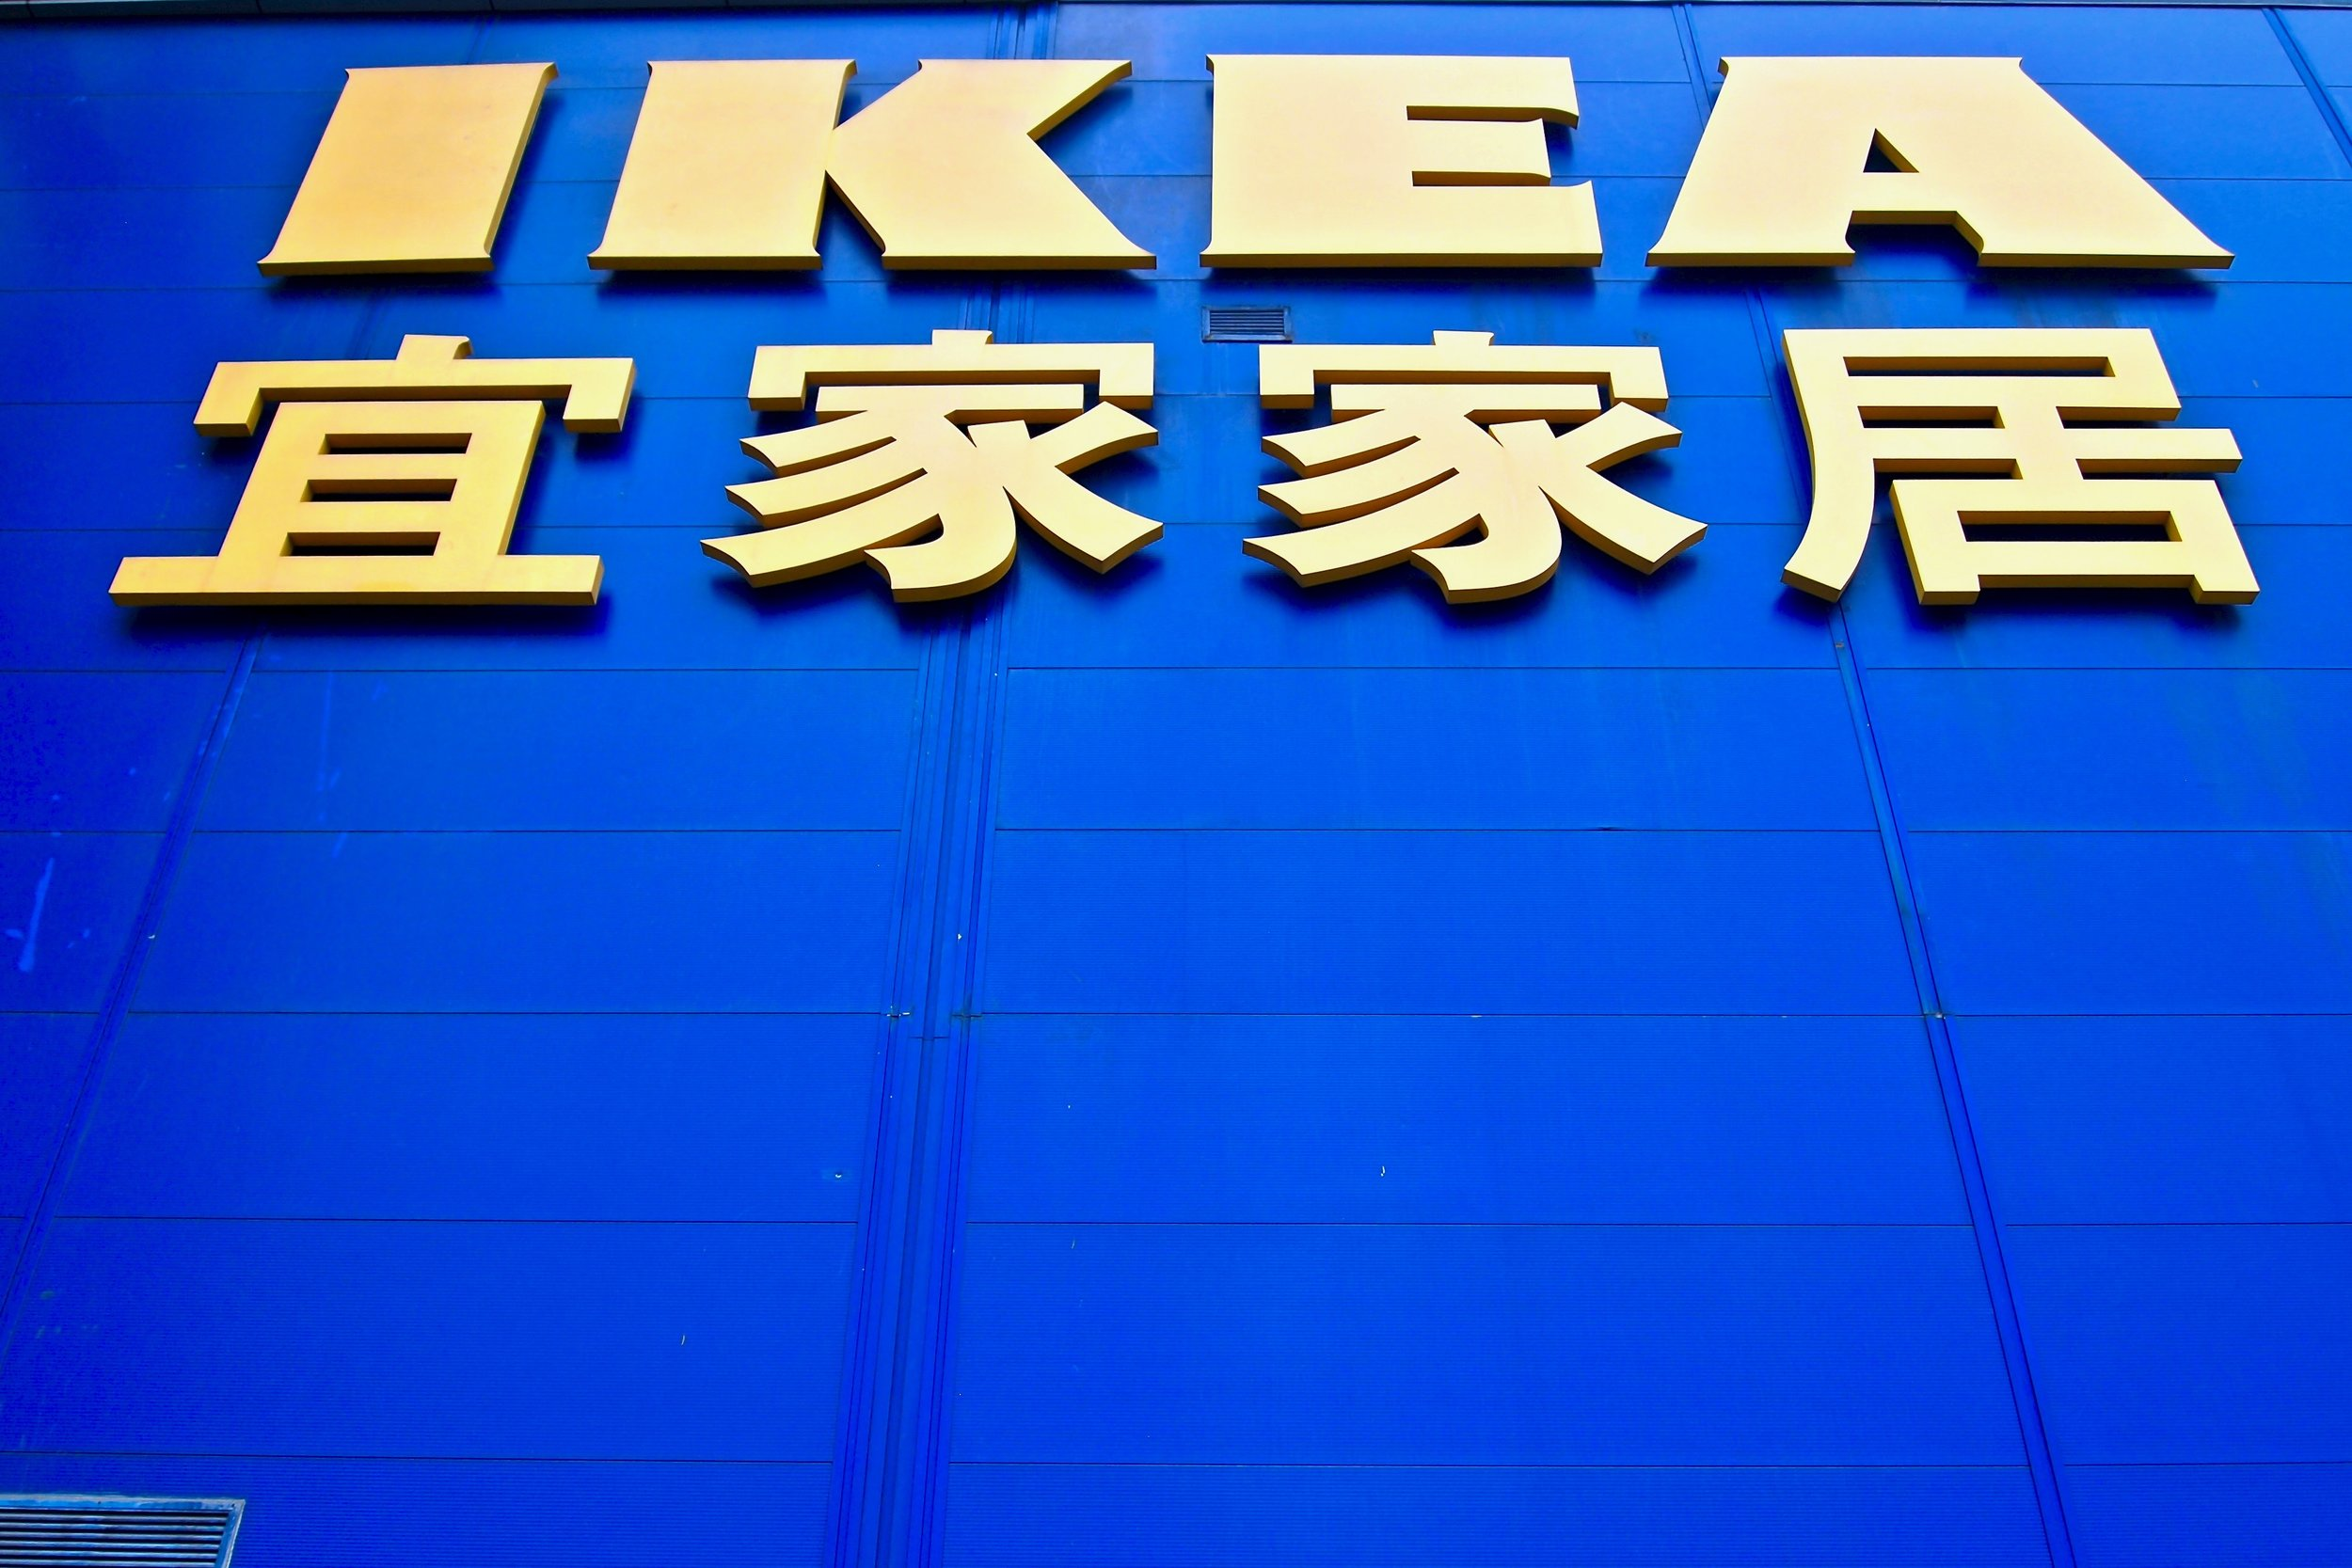 - Hundreds of elderly Shanghainese flock to their local Ikea store to find someone, not to assemble furniture with, but to piece together a relationship.